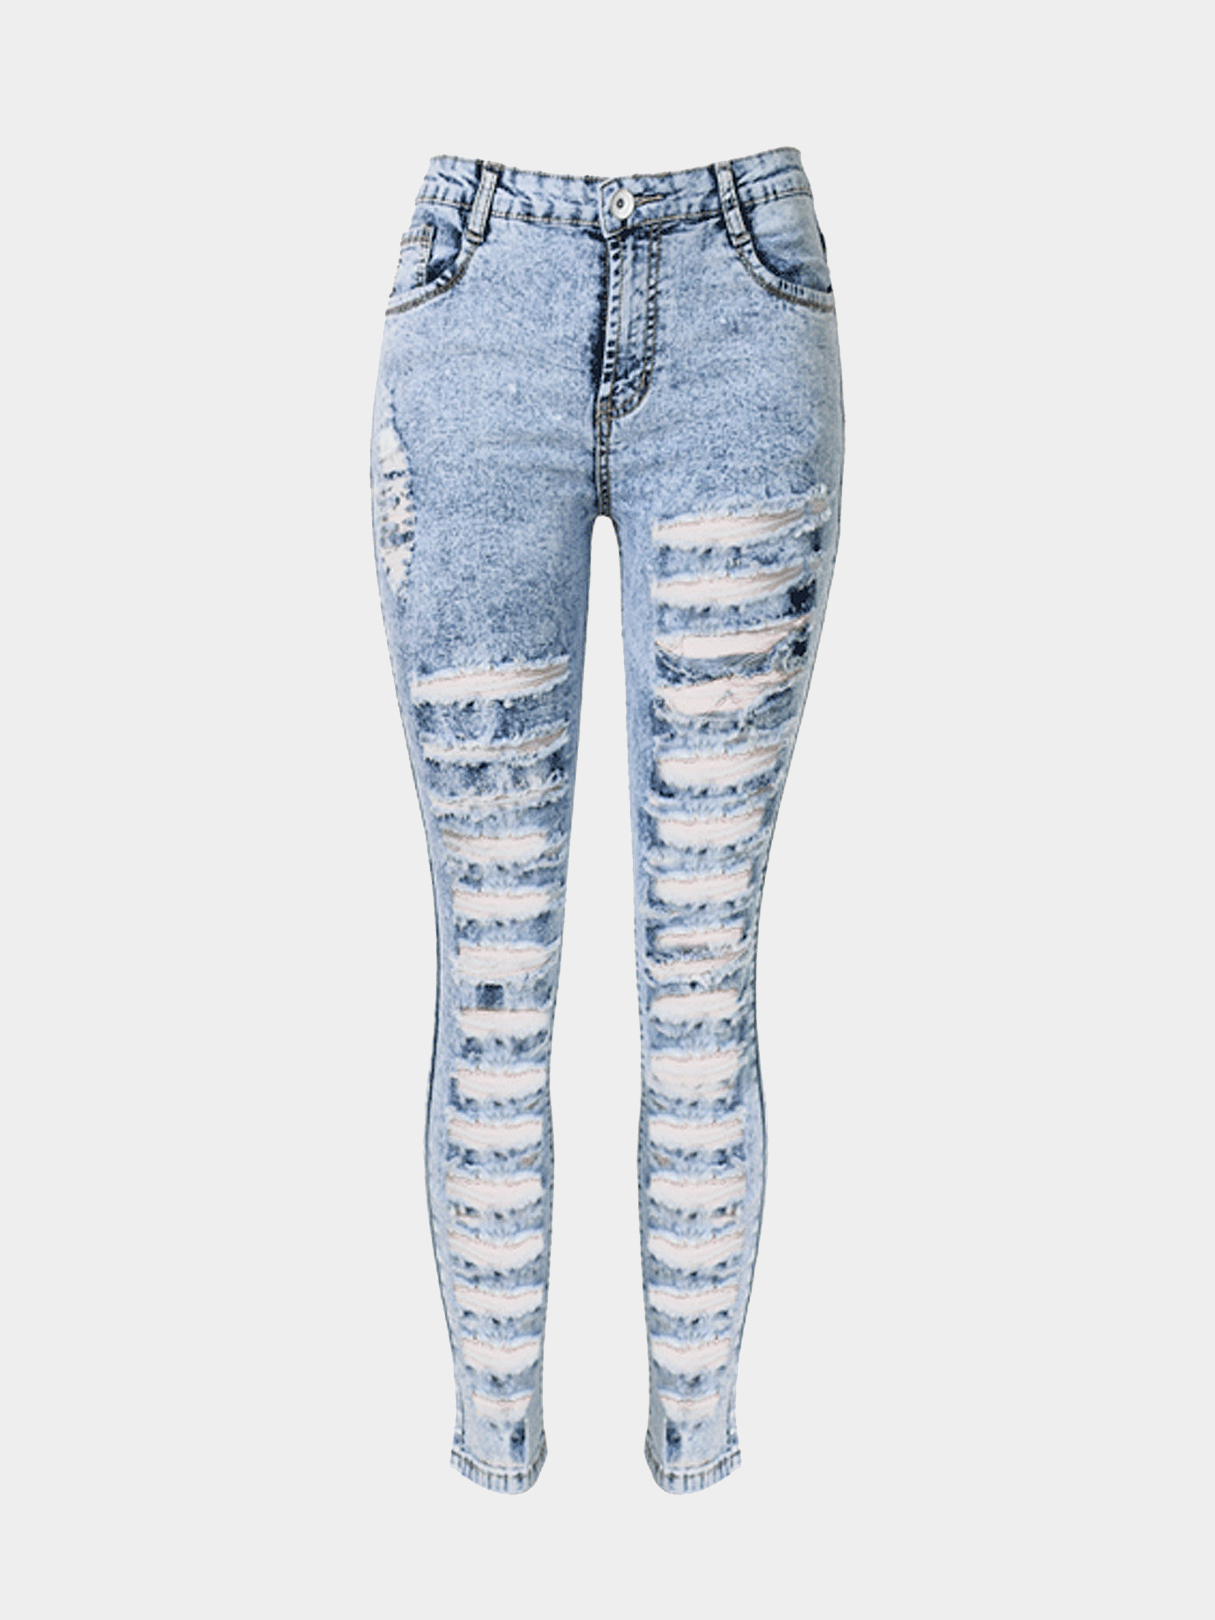 Skinny Jeans In Snow Wash With Extreme Shredded Rips